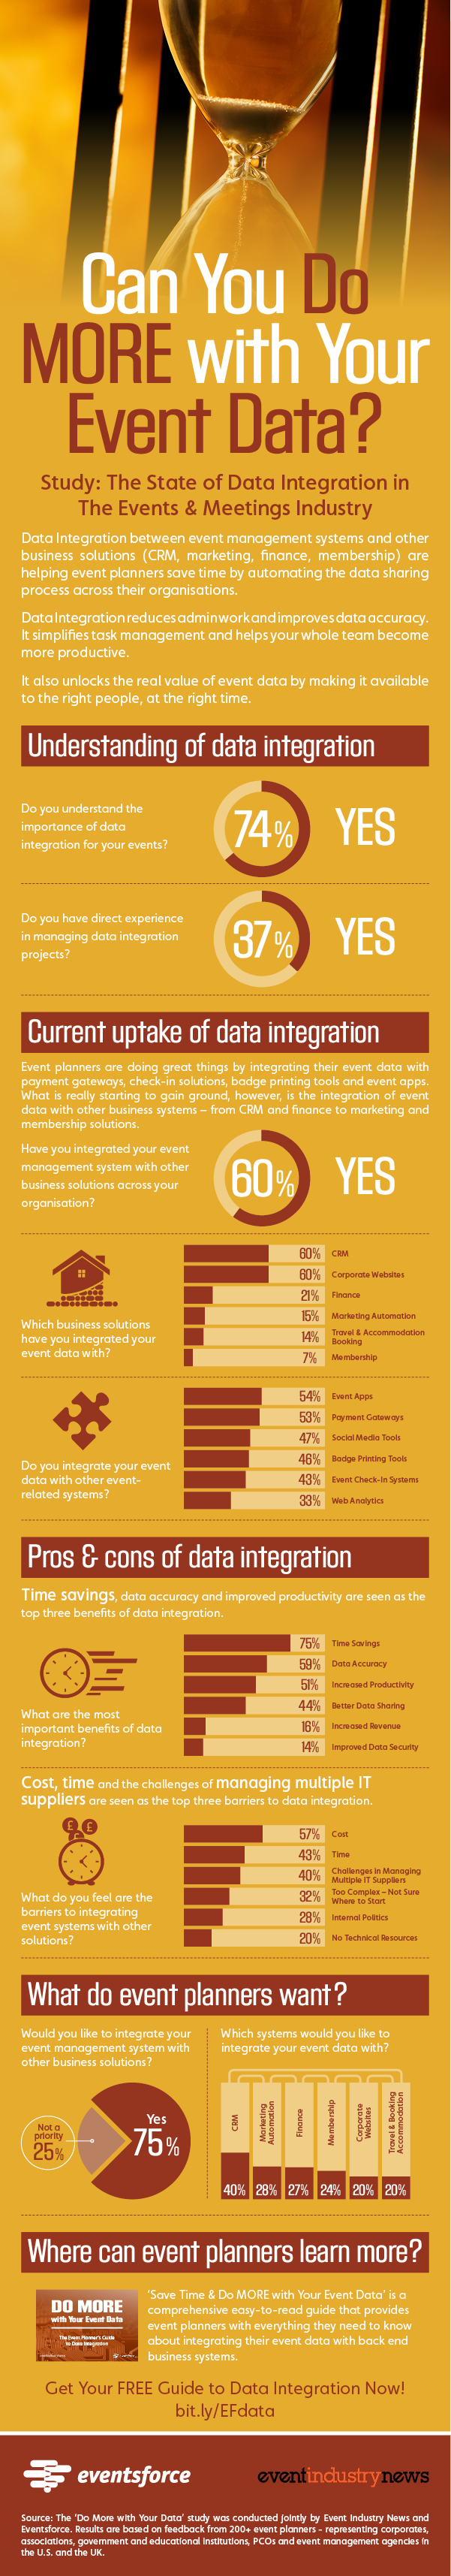 infographic_can-you-do-more-with-your-event-data_final